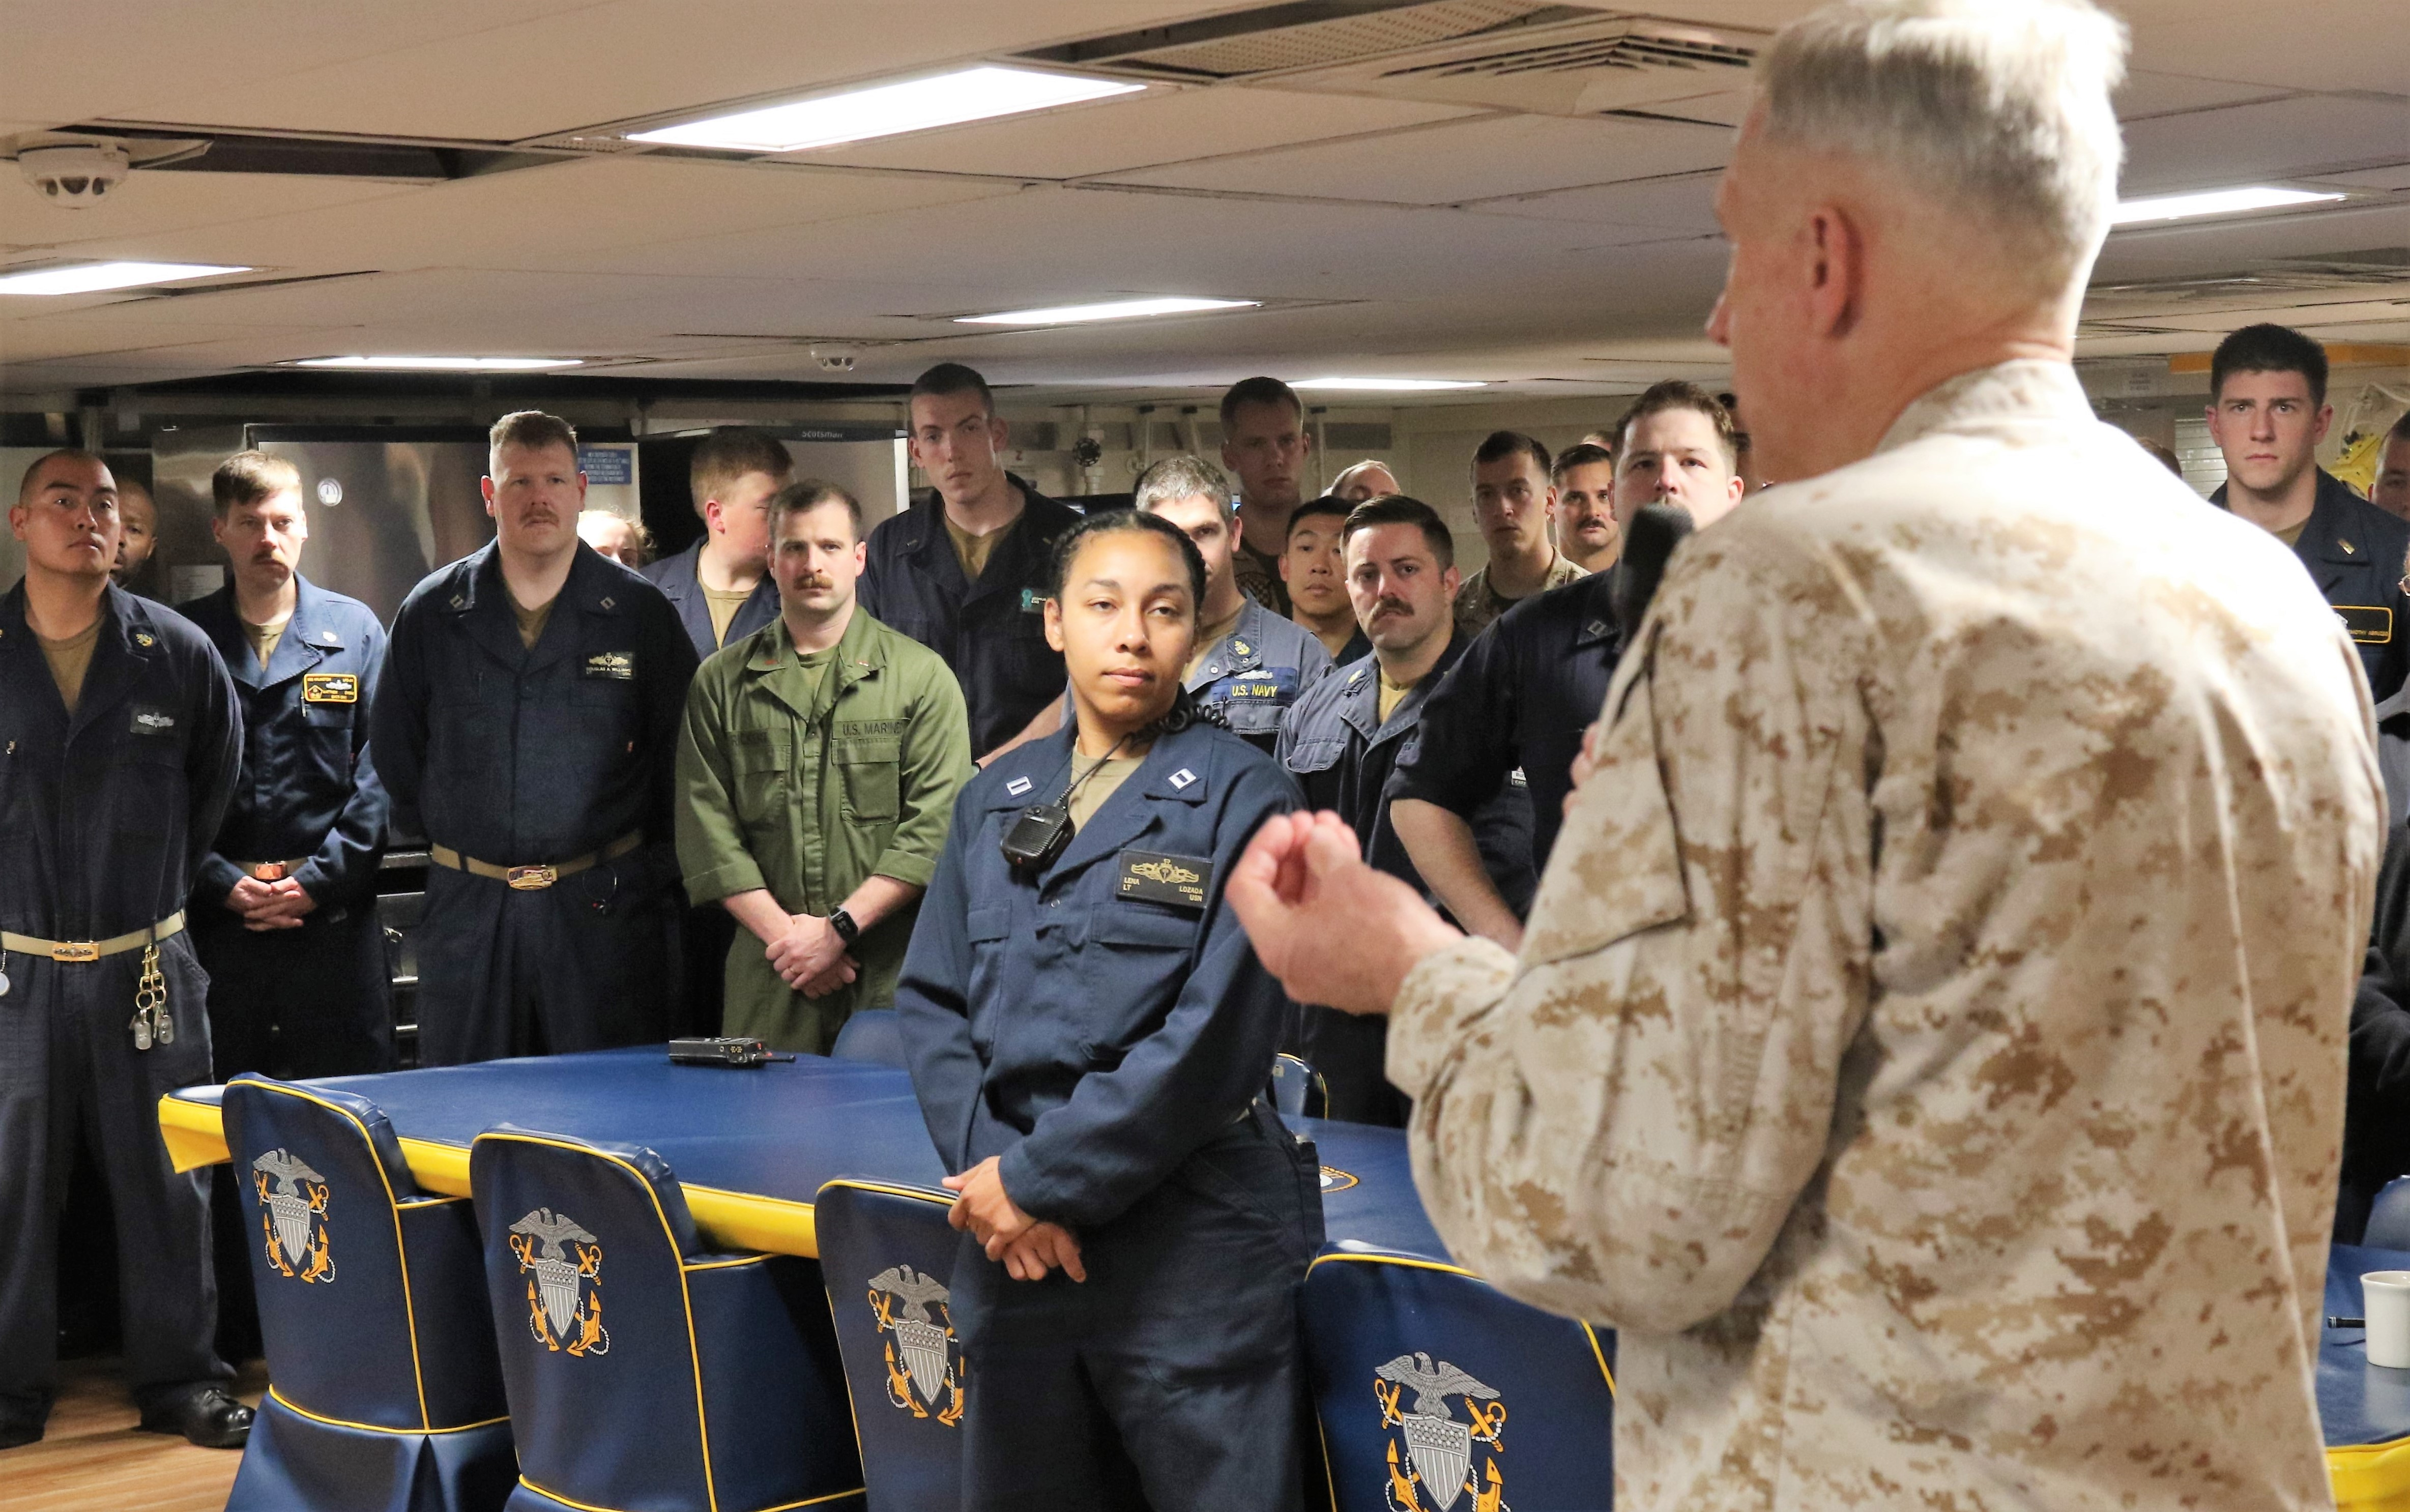 Marine Corps Gen. Thomas D. Waldhauser, commander, U.S. Africa Command speaks to personnel aboard the San Antonio-class amphibious transport dock ship USS Arlington (LPD-24) May 9, 2019. He thanked the crew for their efforts to support AFRICOM operations and engagements in the command's area of responsibility.